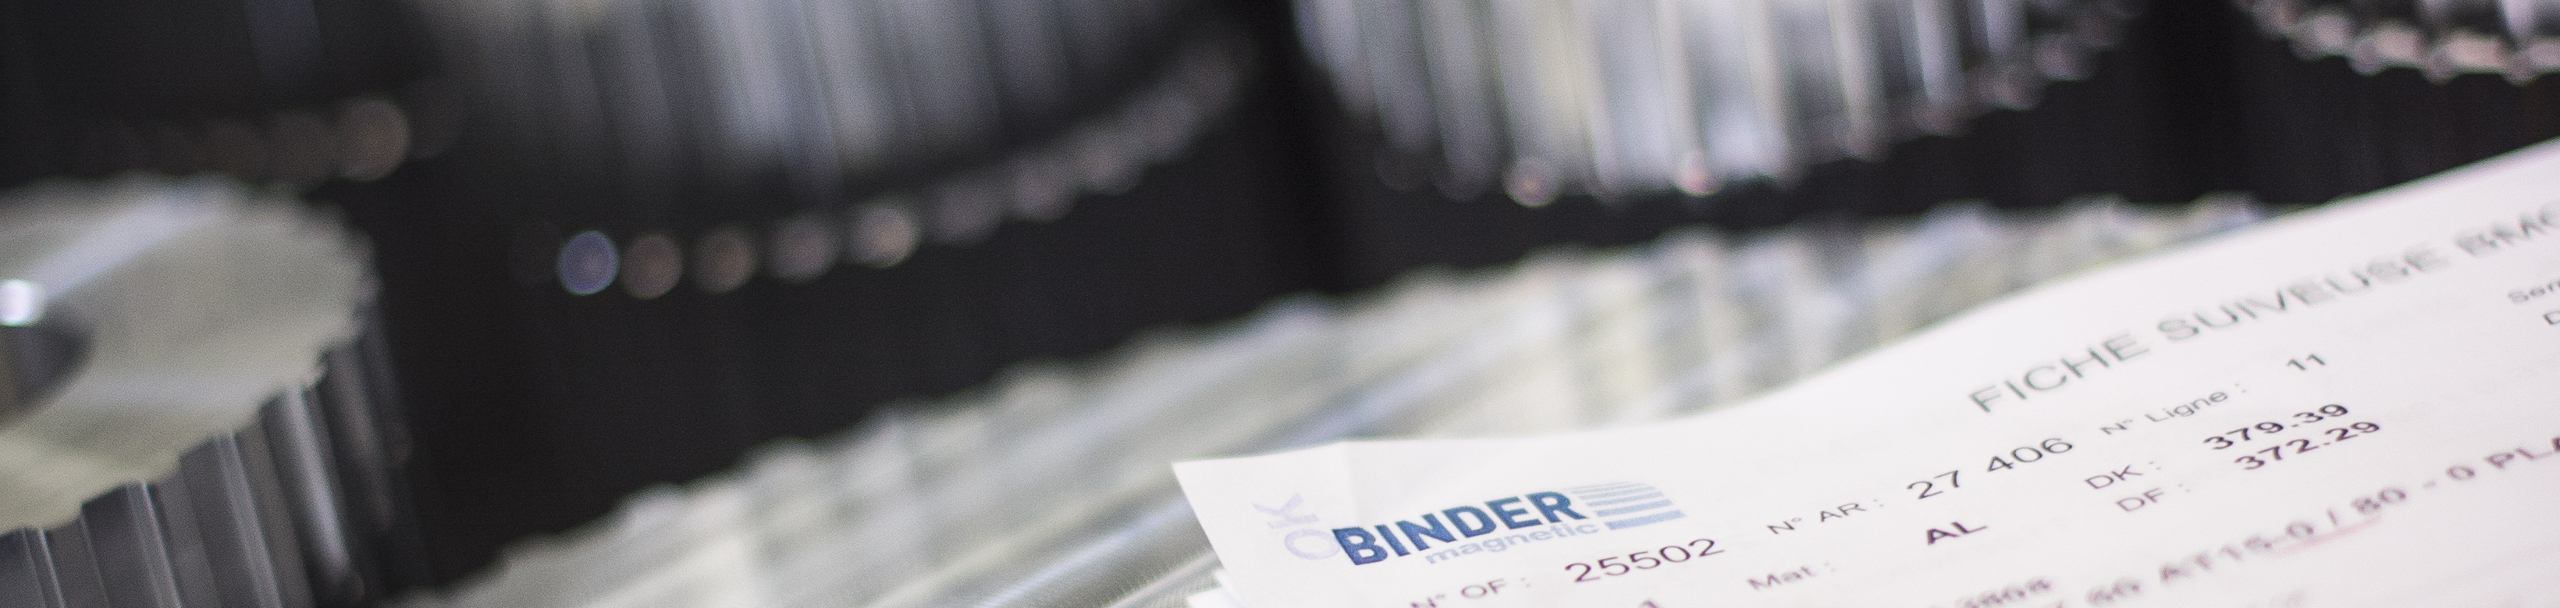 BinderMagnetic binder-magnetic-company-a-leader-and-innovator